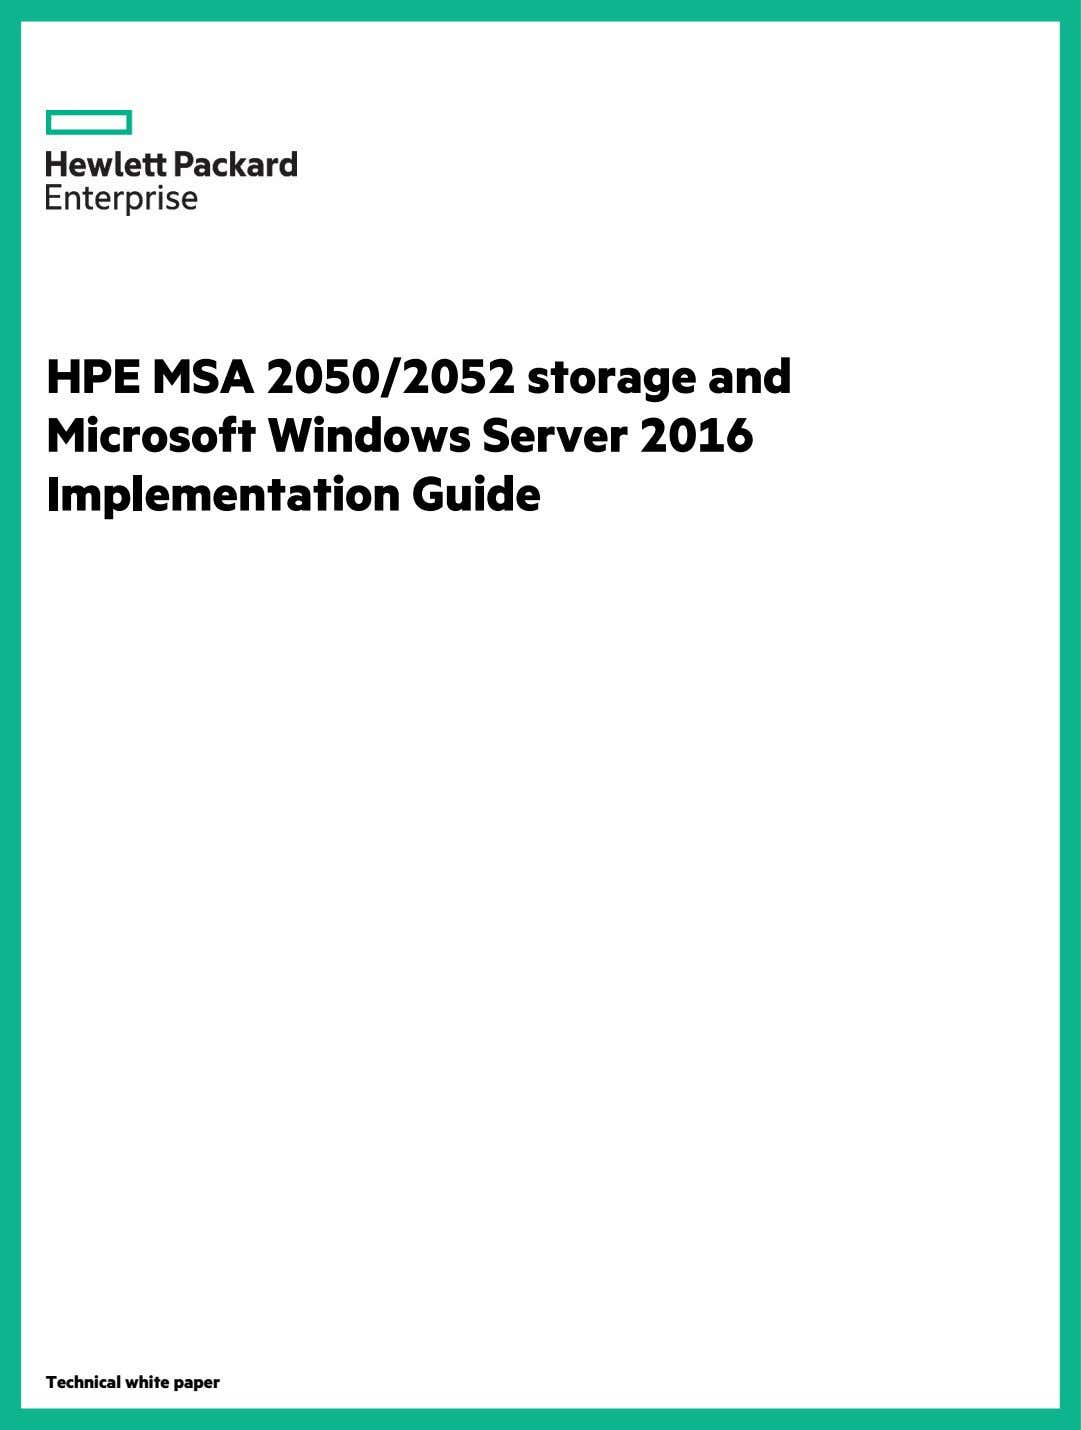 HPE MSA 2050/2052 storage and Microsoft Windows Server 2016 Implementation Guide Technical white paper